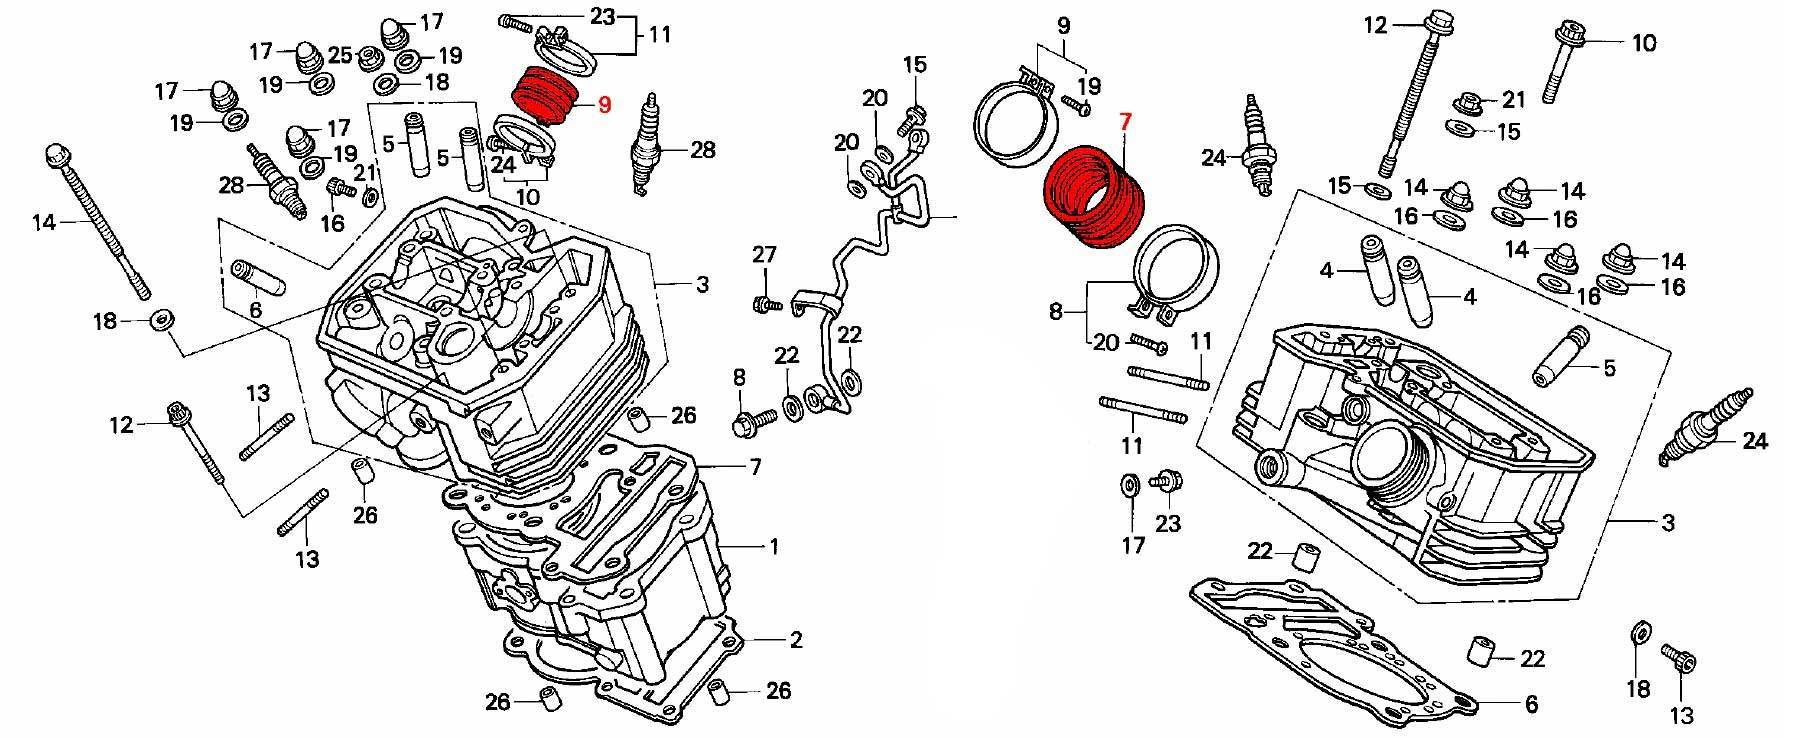 Honda Crf 230 Engine Diagram. Honda. Auto Wiring Diagram